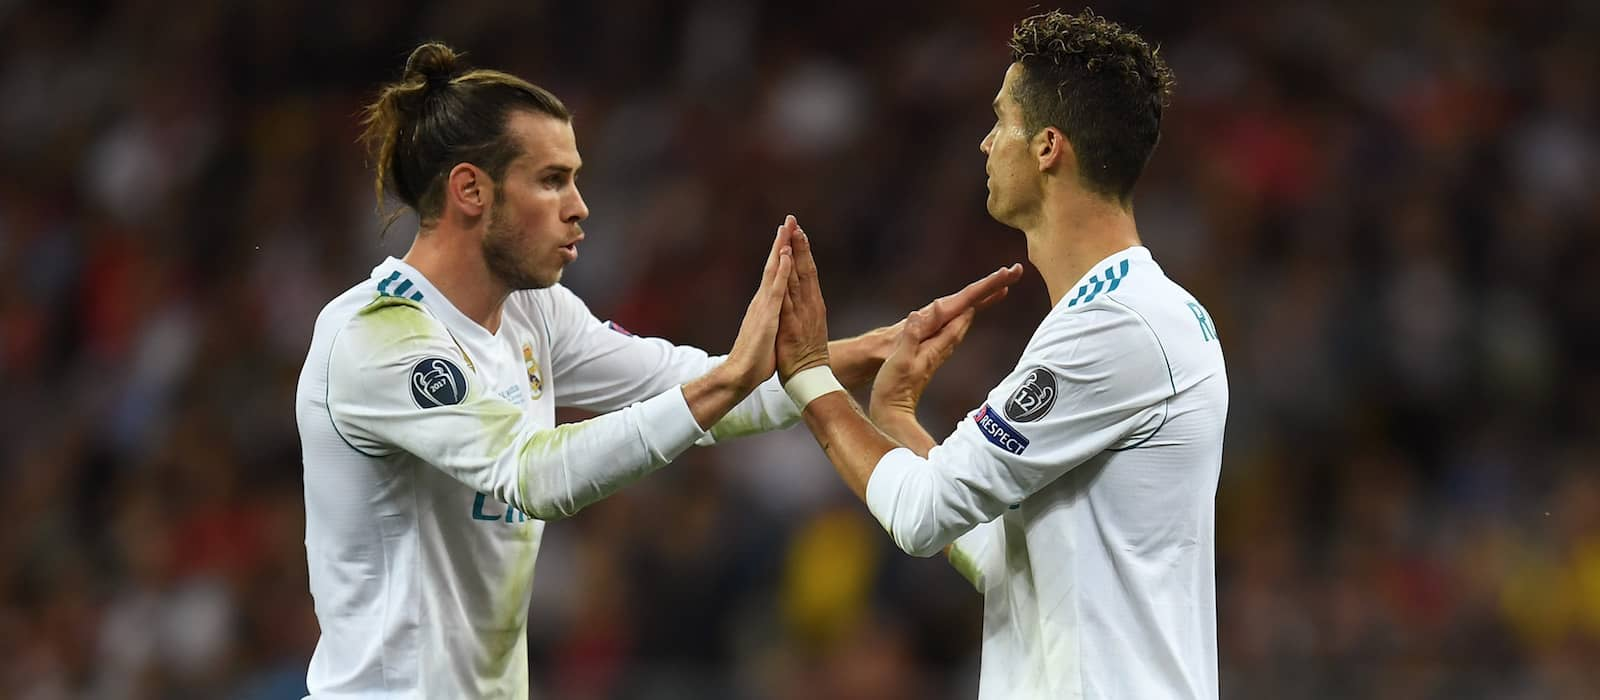 Gareth Bale didn't move to Manchester United for this reason: report